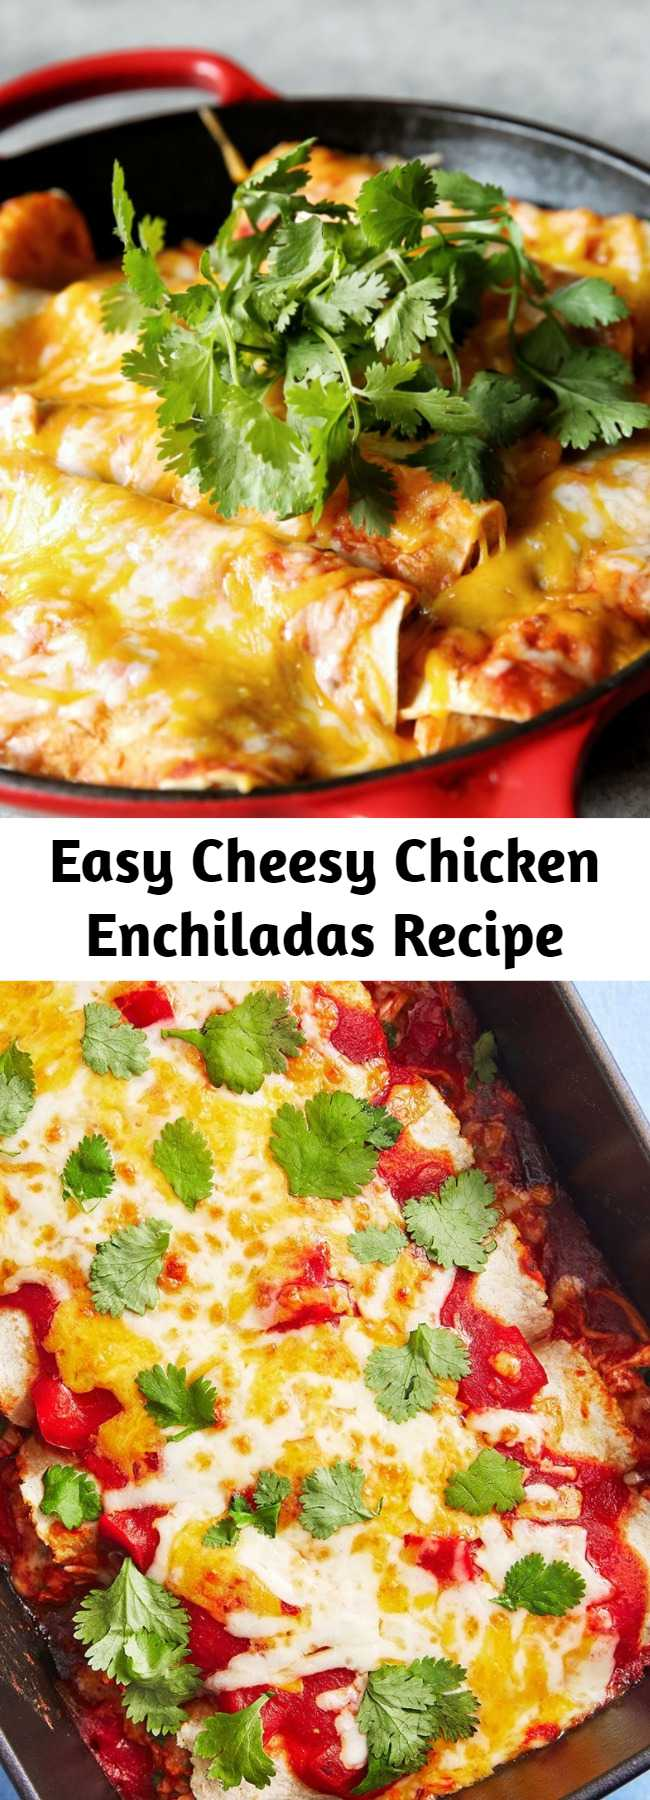 Easy Cheesy Chicken Enchiladas Recipe - These enchiladas fall somewhere in between; they're definitely Tex-Mex at their core, but we went with corn tortillas in place of flour. (Go ahead and use flour if that's your preference though!) They may not be authentic by, well, anyone's standards, but they are quick, easy, filling, and delicious.